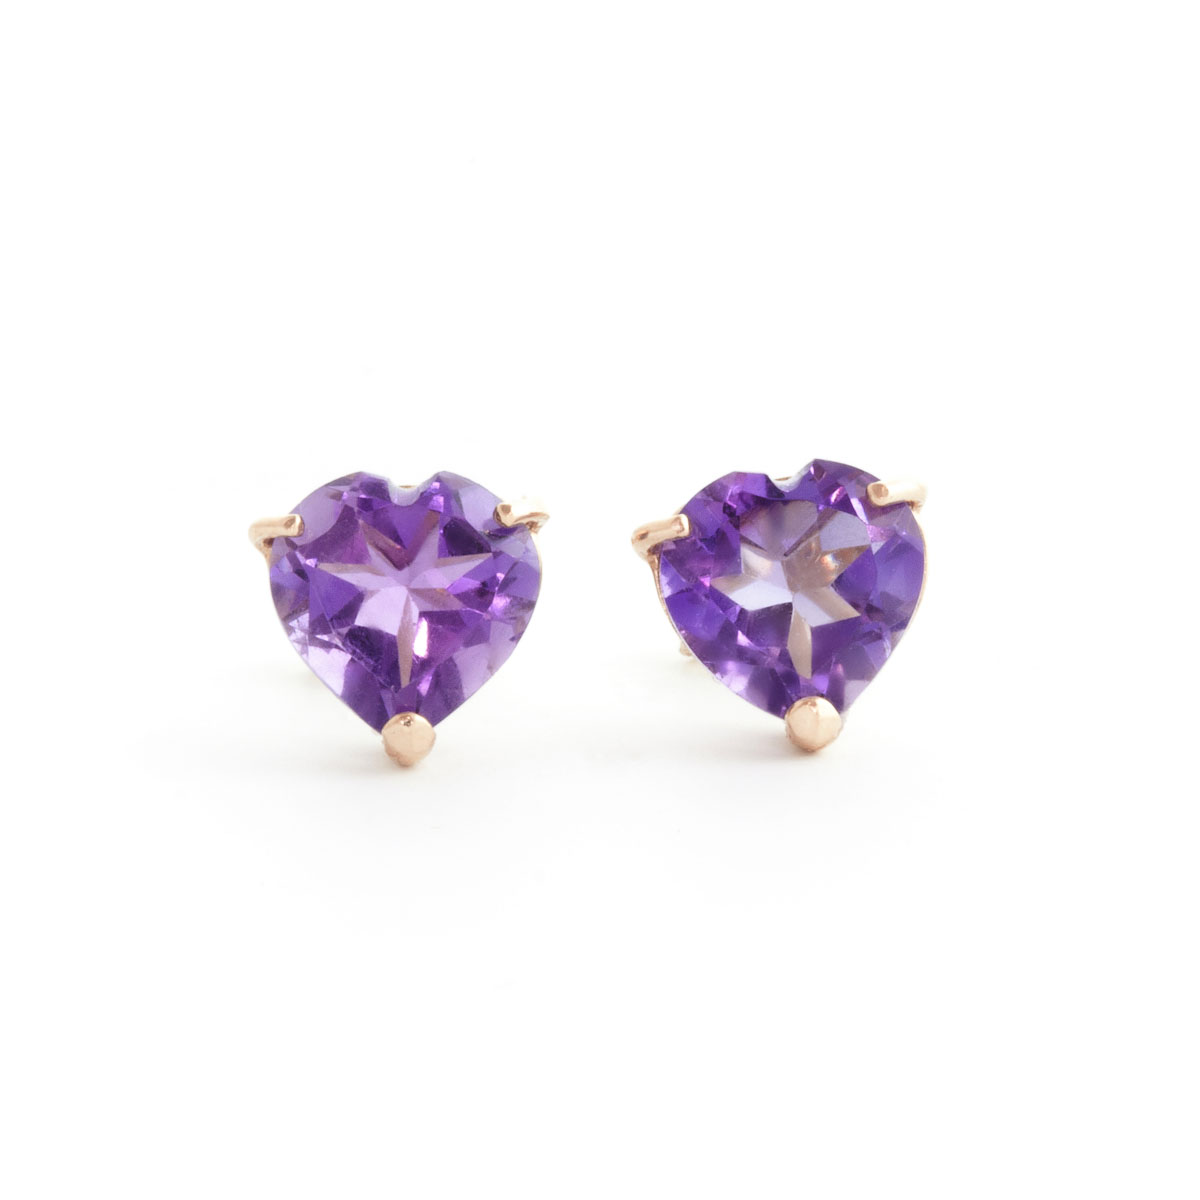 Amethyst Stud Earrings 3.25 ctw in 9ct Rose Gold